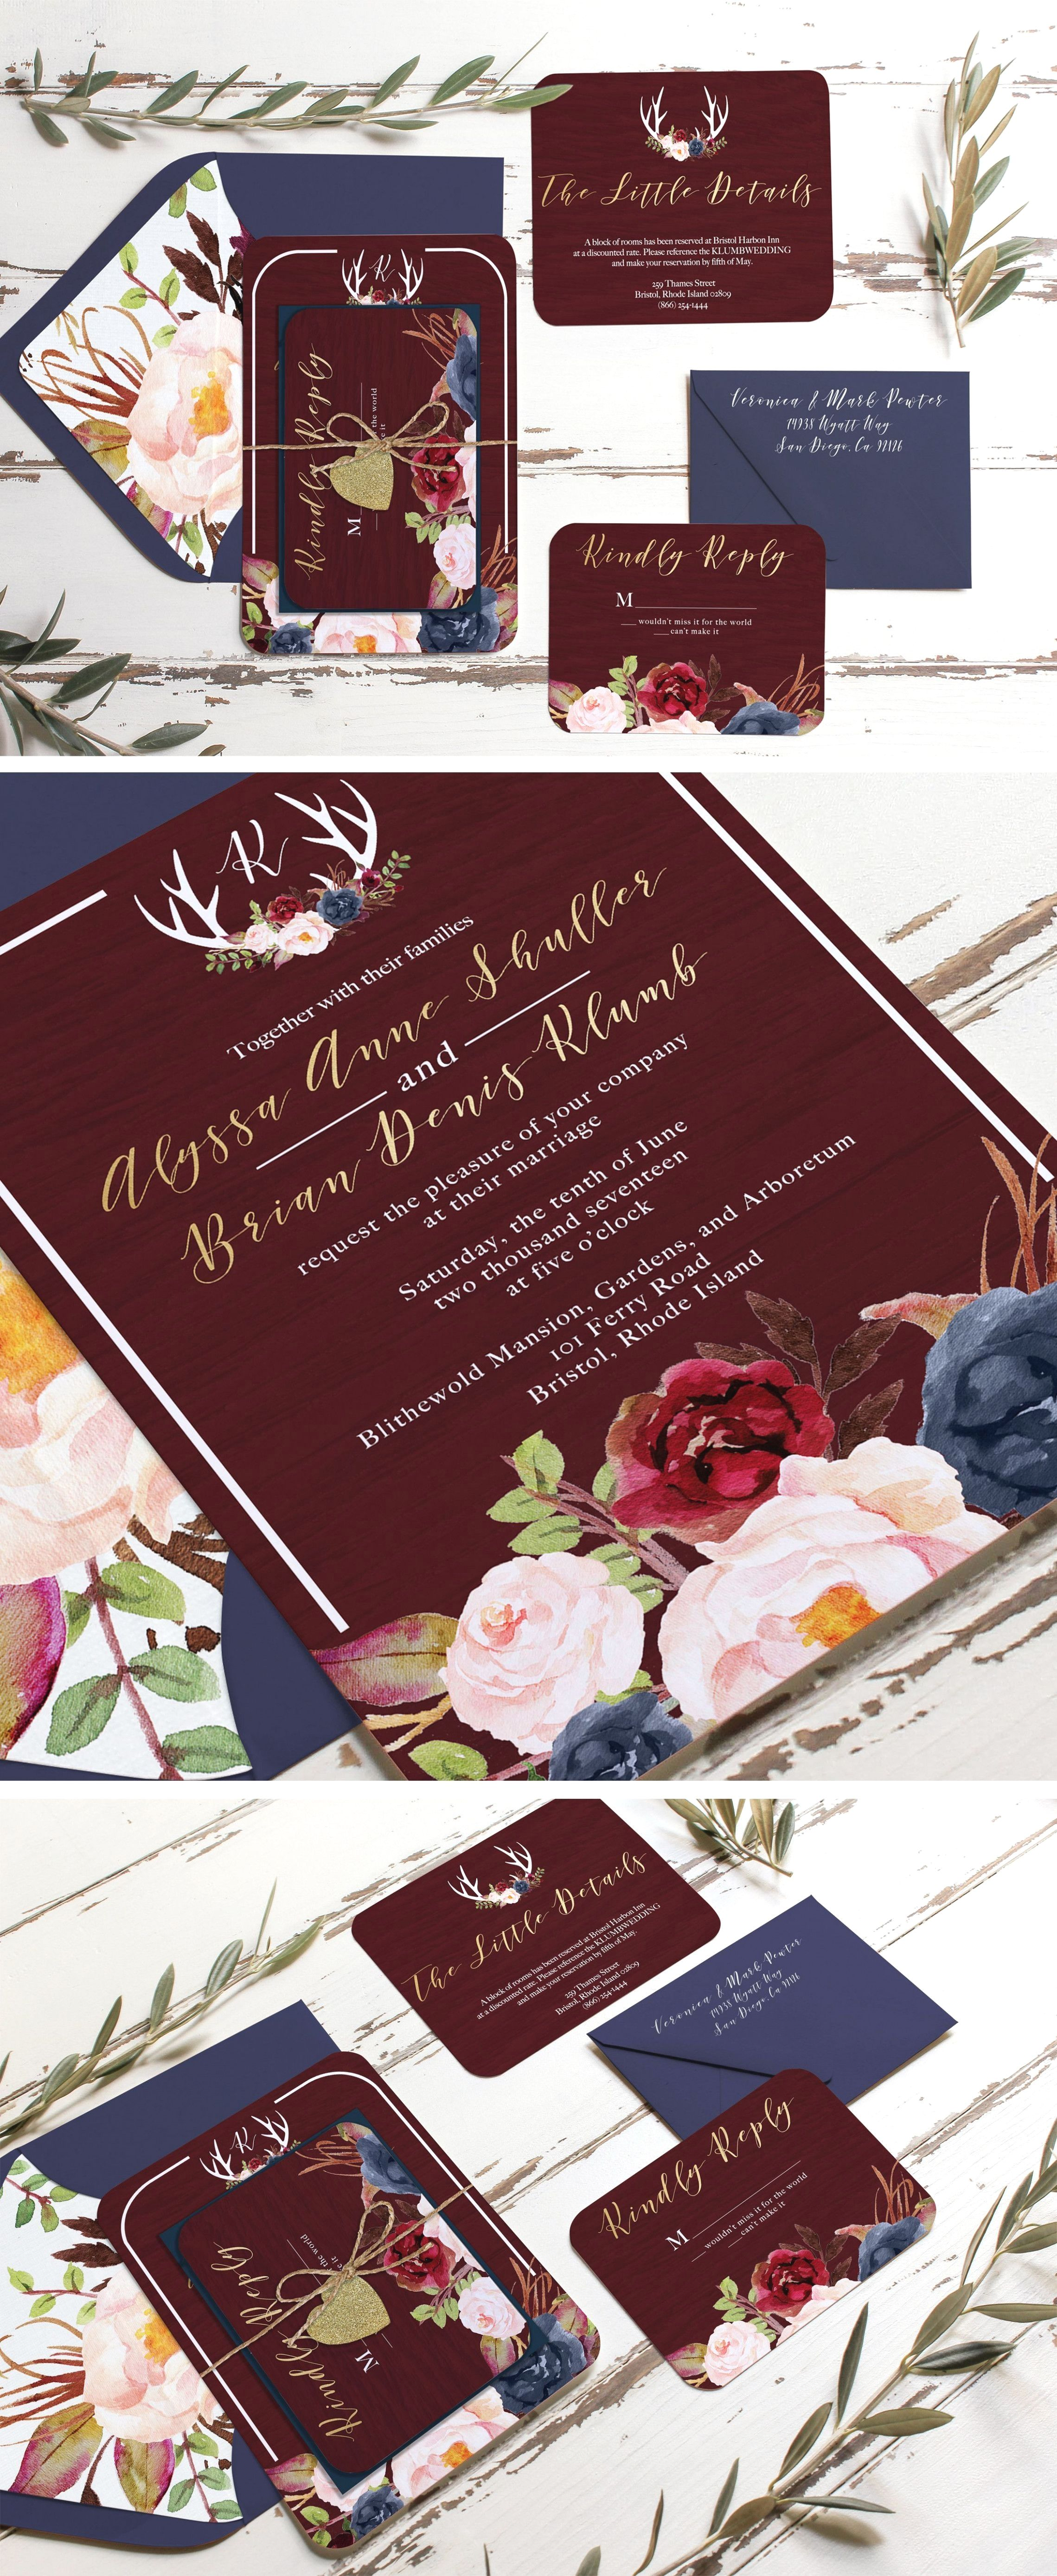 Rustic Wedding Ceremony Burgundy And Navy Marsala Burgundy Gold And Navy Rustic In 2020 Fun Wedding Invitations Wedding Invitations Rustic Blush Wedding Invitations